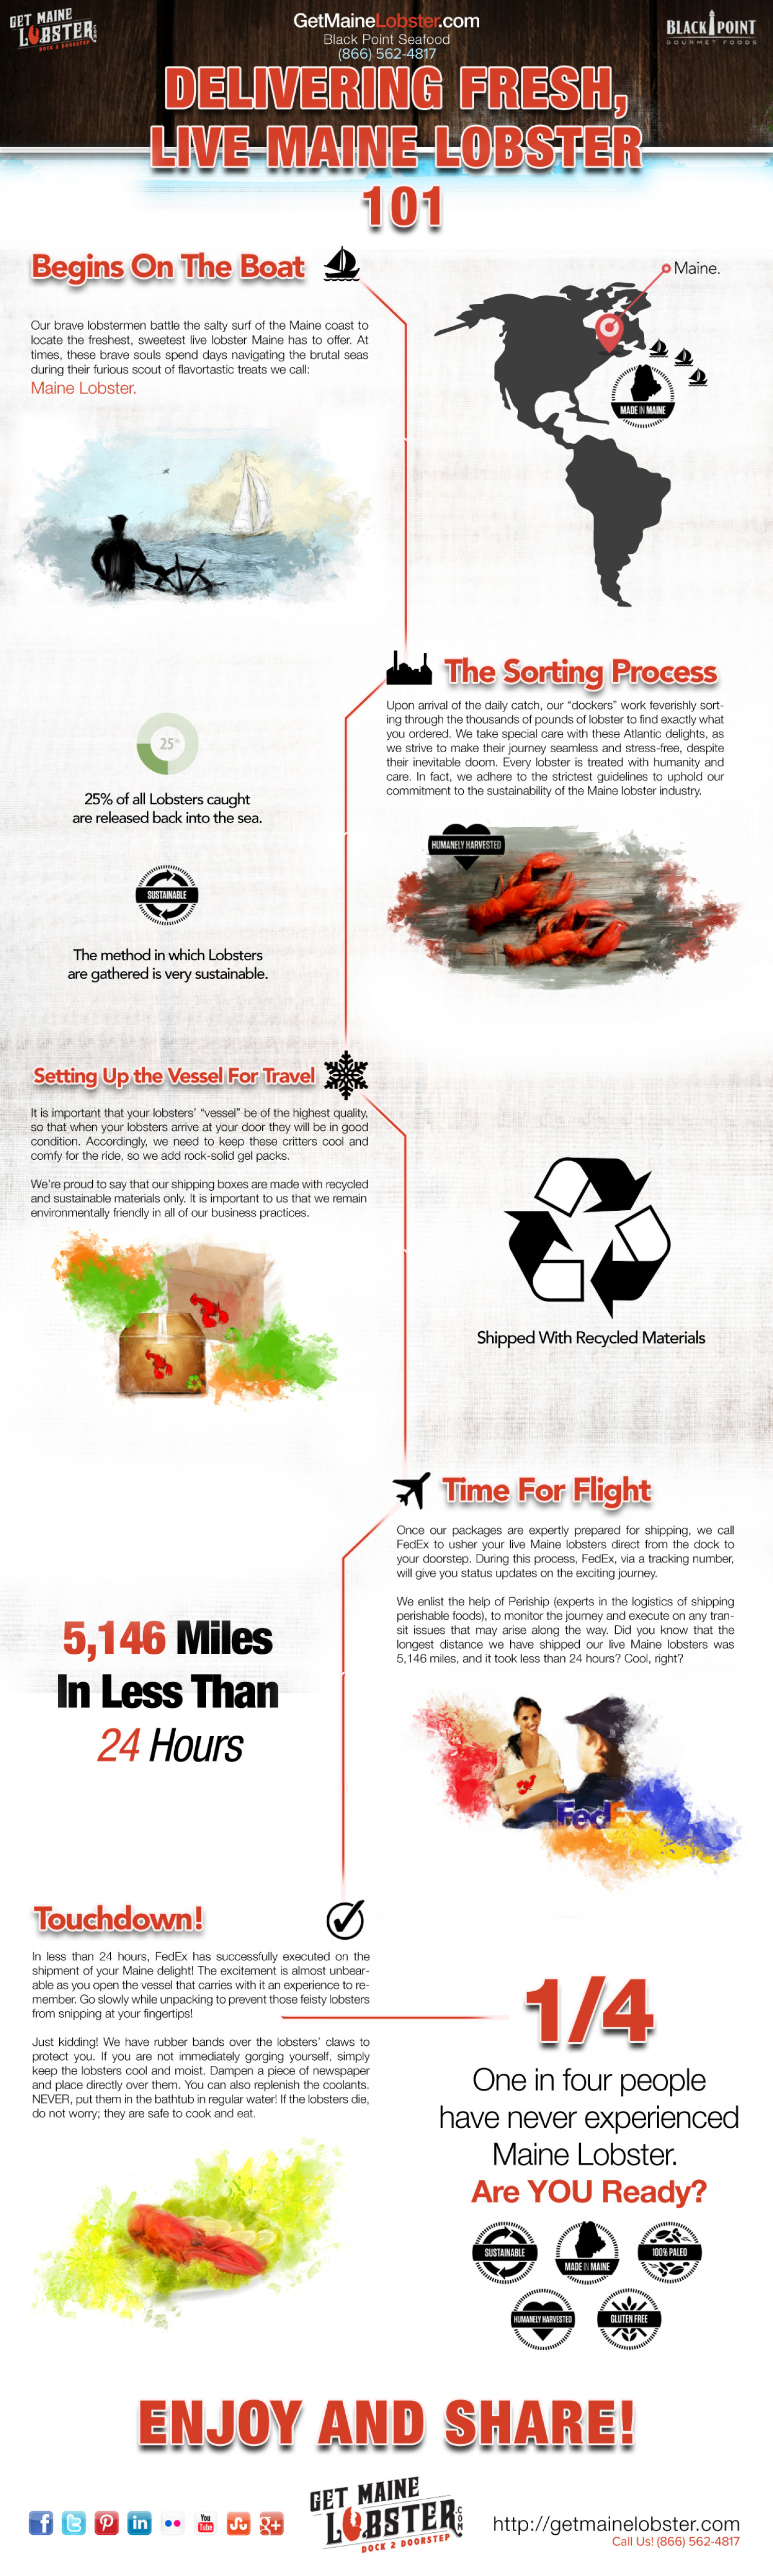 Delivering Live Maine Lobster 101 Infographic